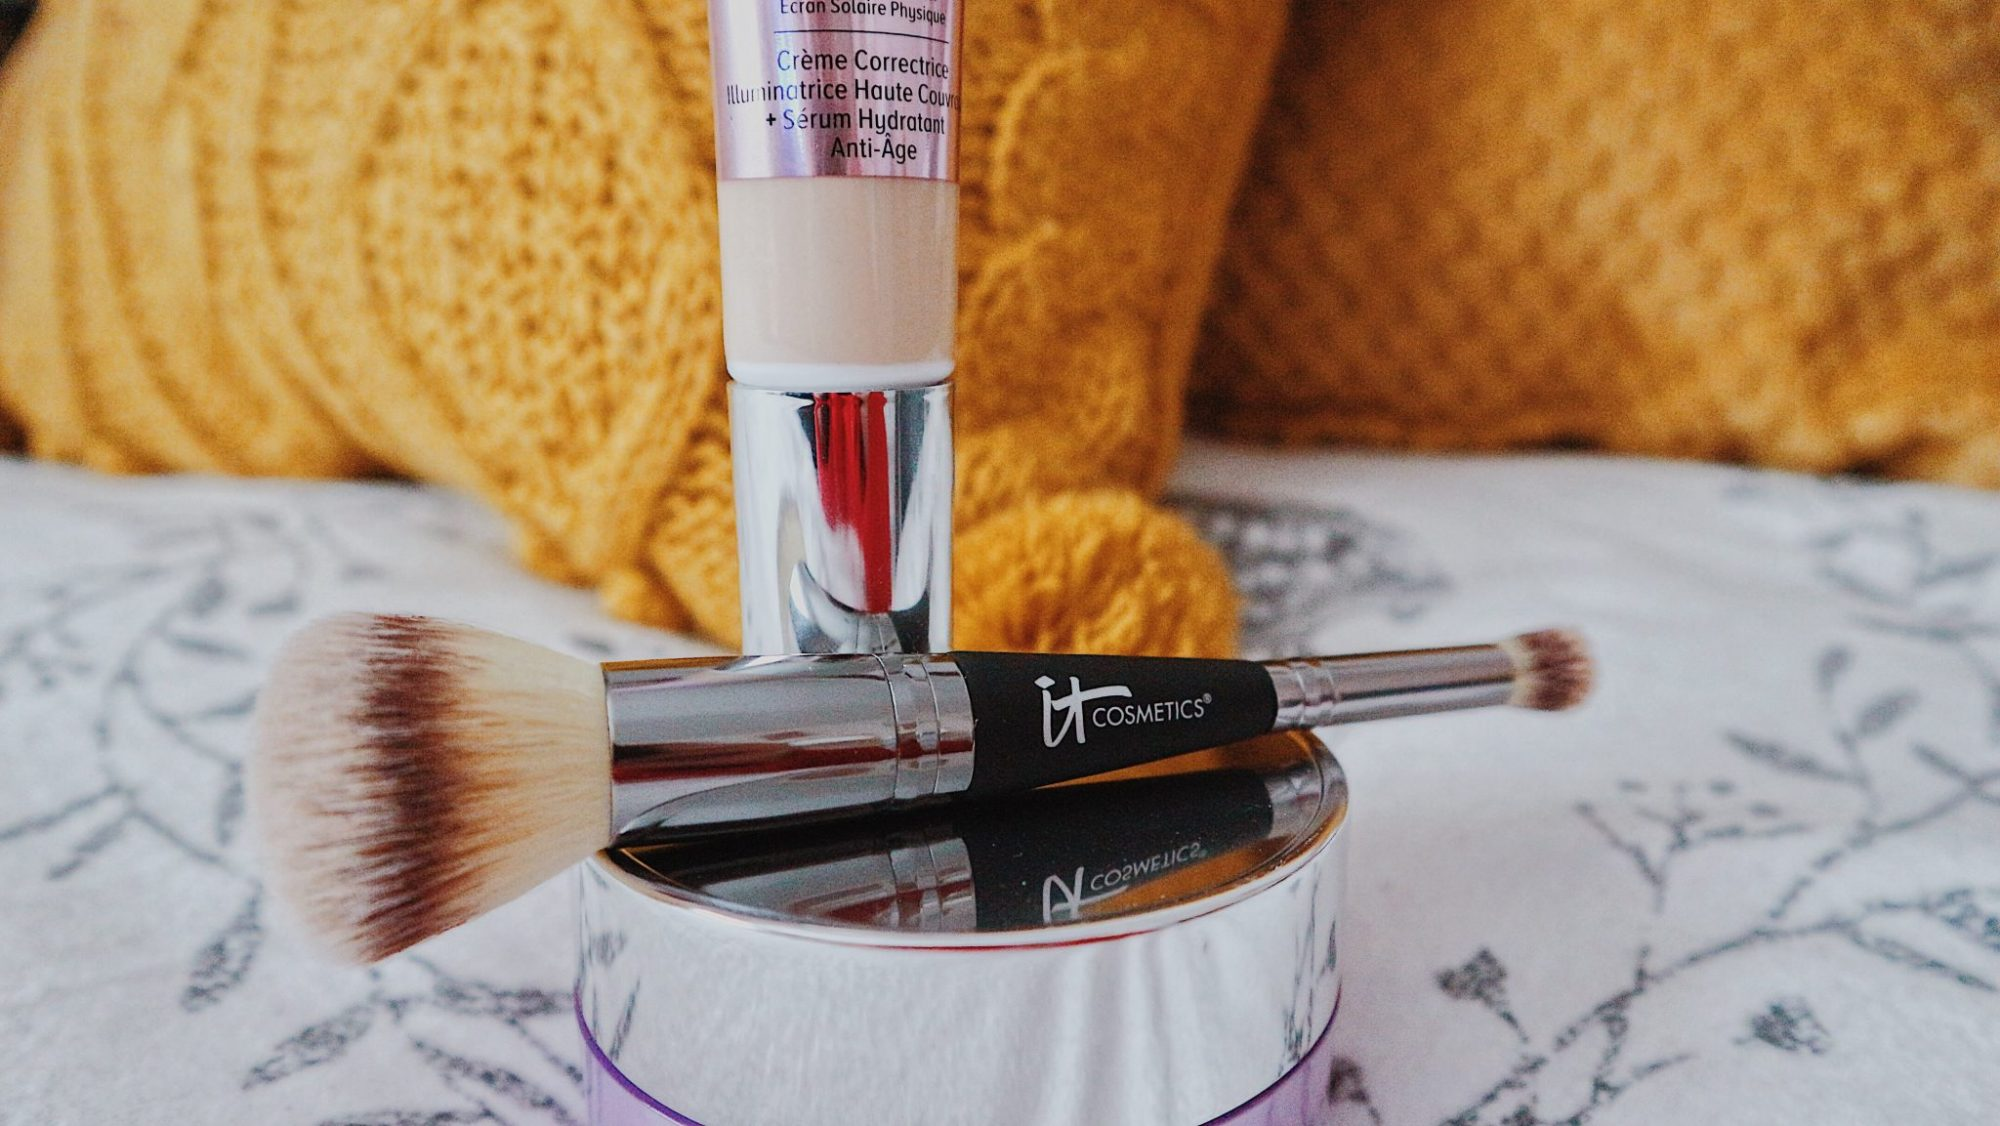 IT Cosmetics • Illuminating CC Cream • Dual Ended Makeup Brush • Buffing And Concealer Brush